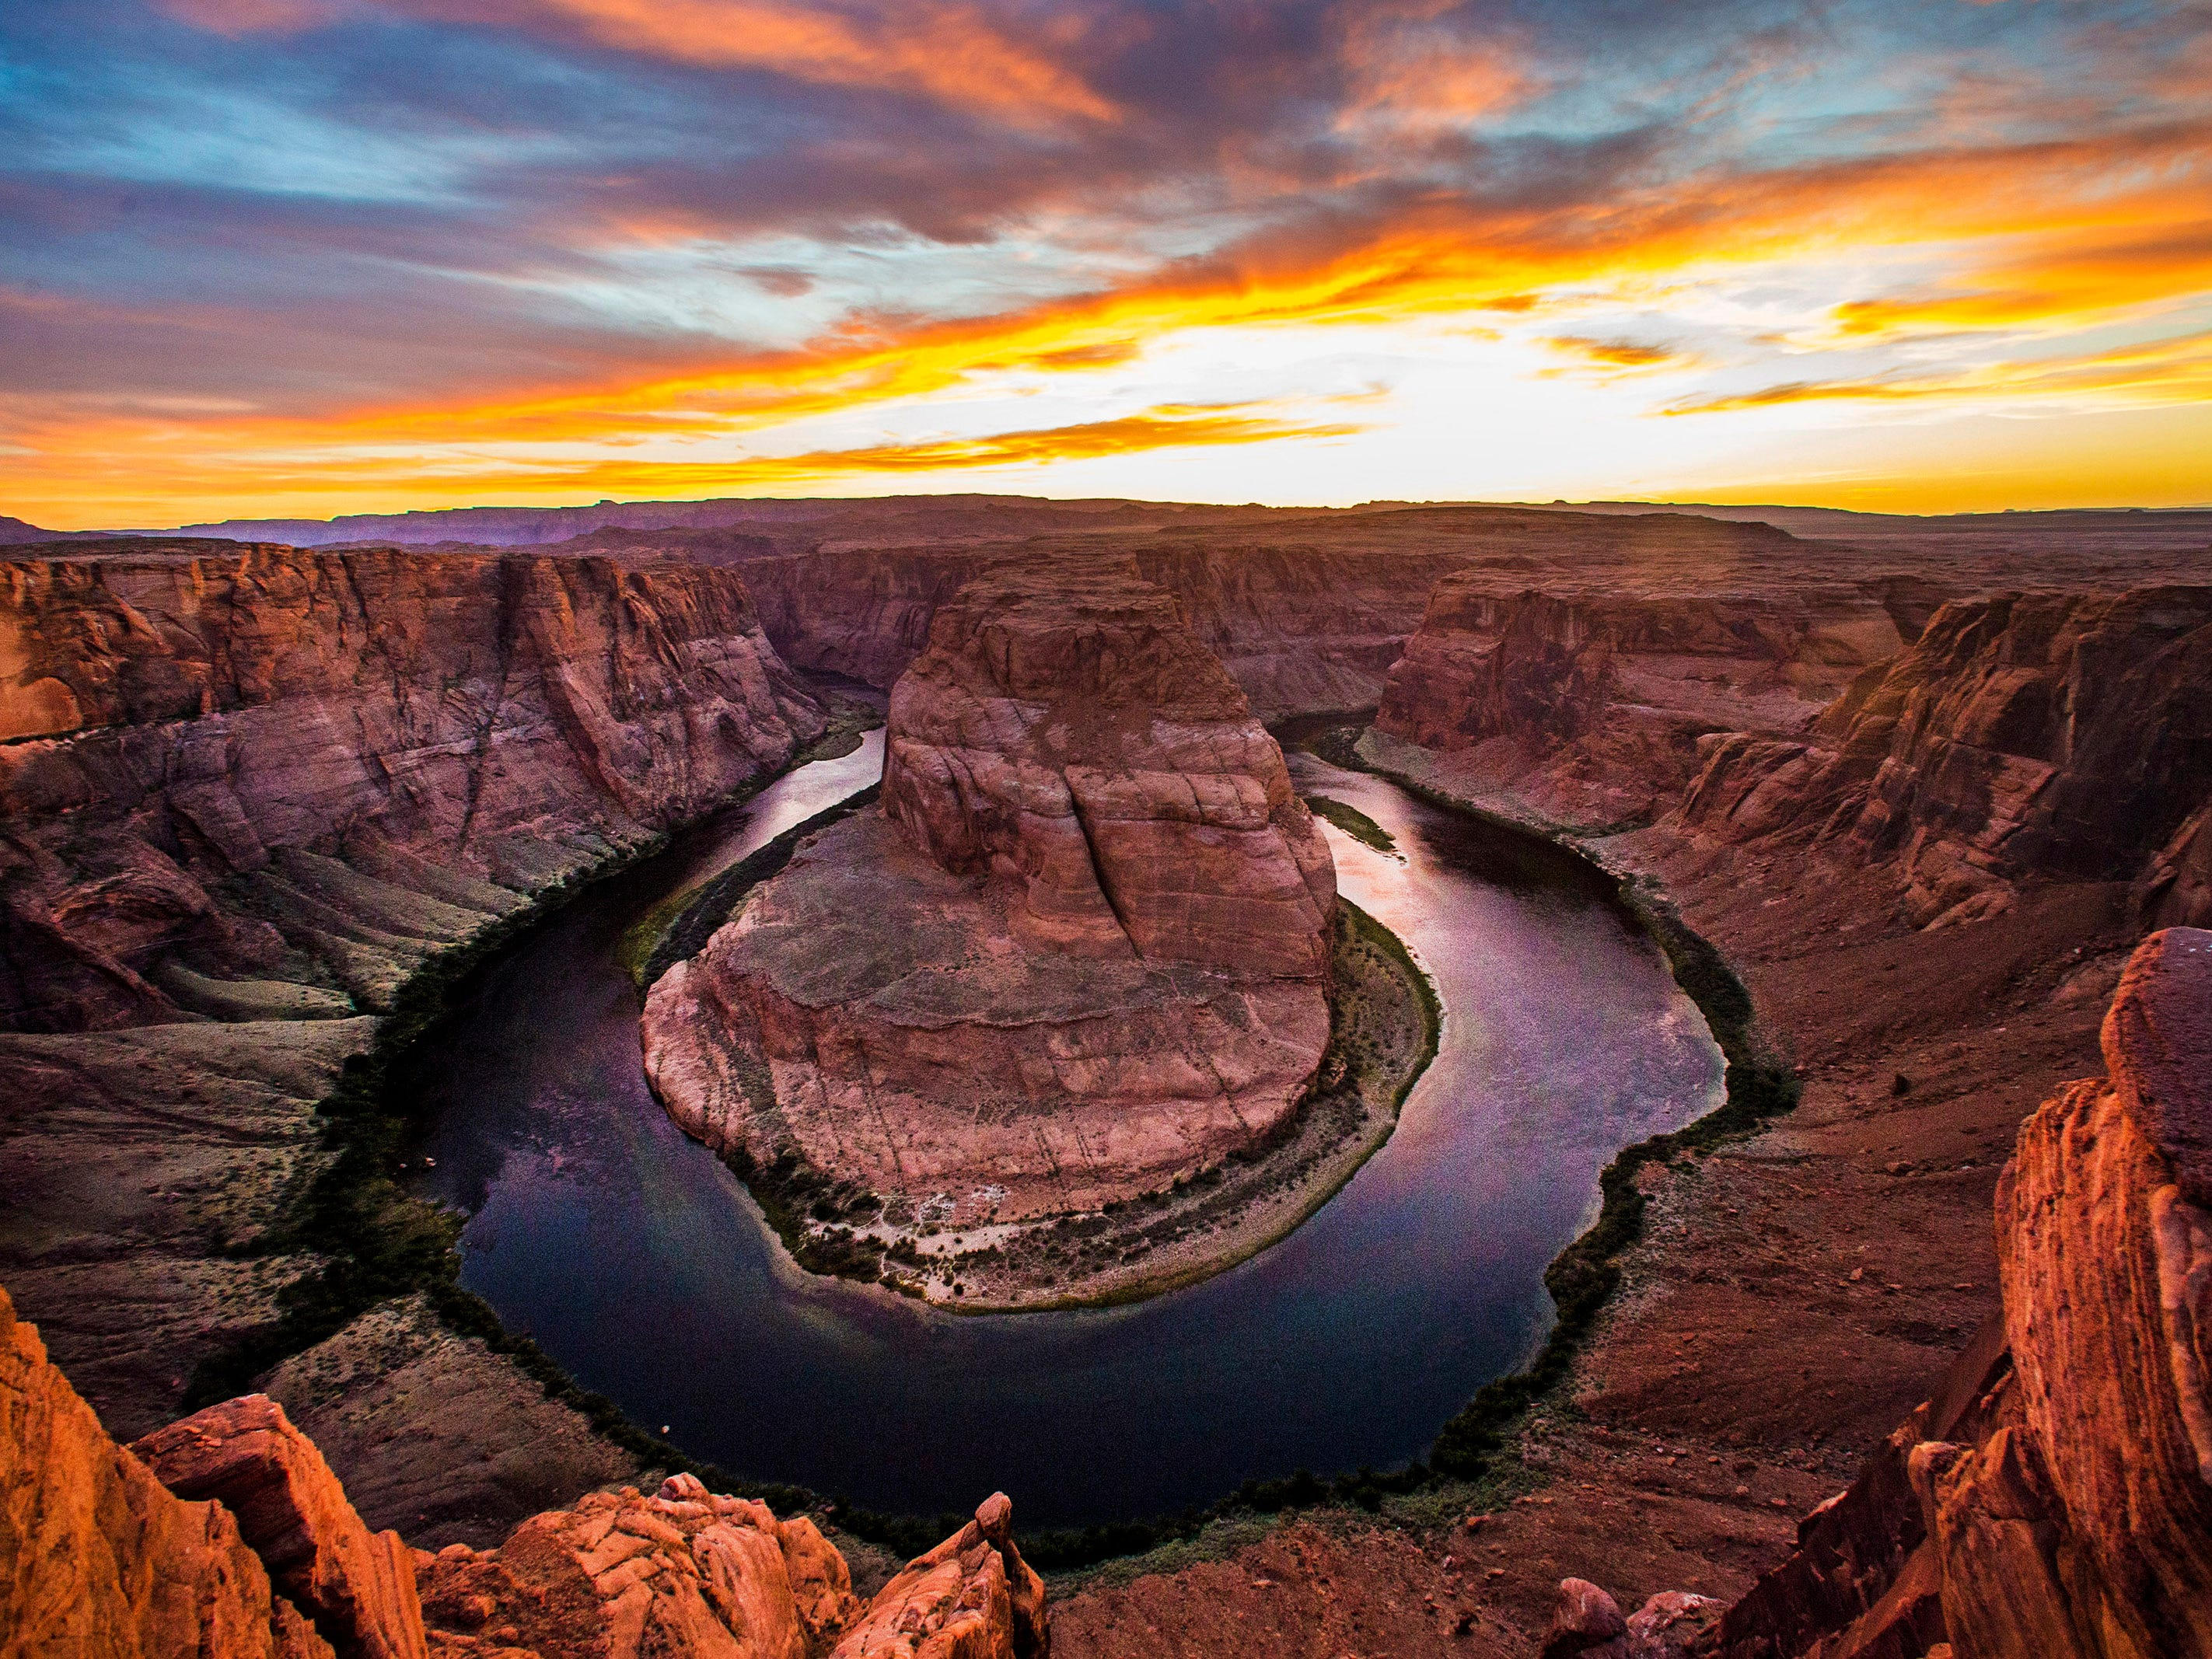 The sun sets over the Colorado River at Horseshoe Bend in the Glen Canyon National Recreational Area near Page, Ariz. May 9, 2018.